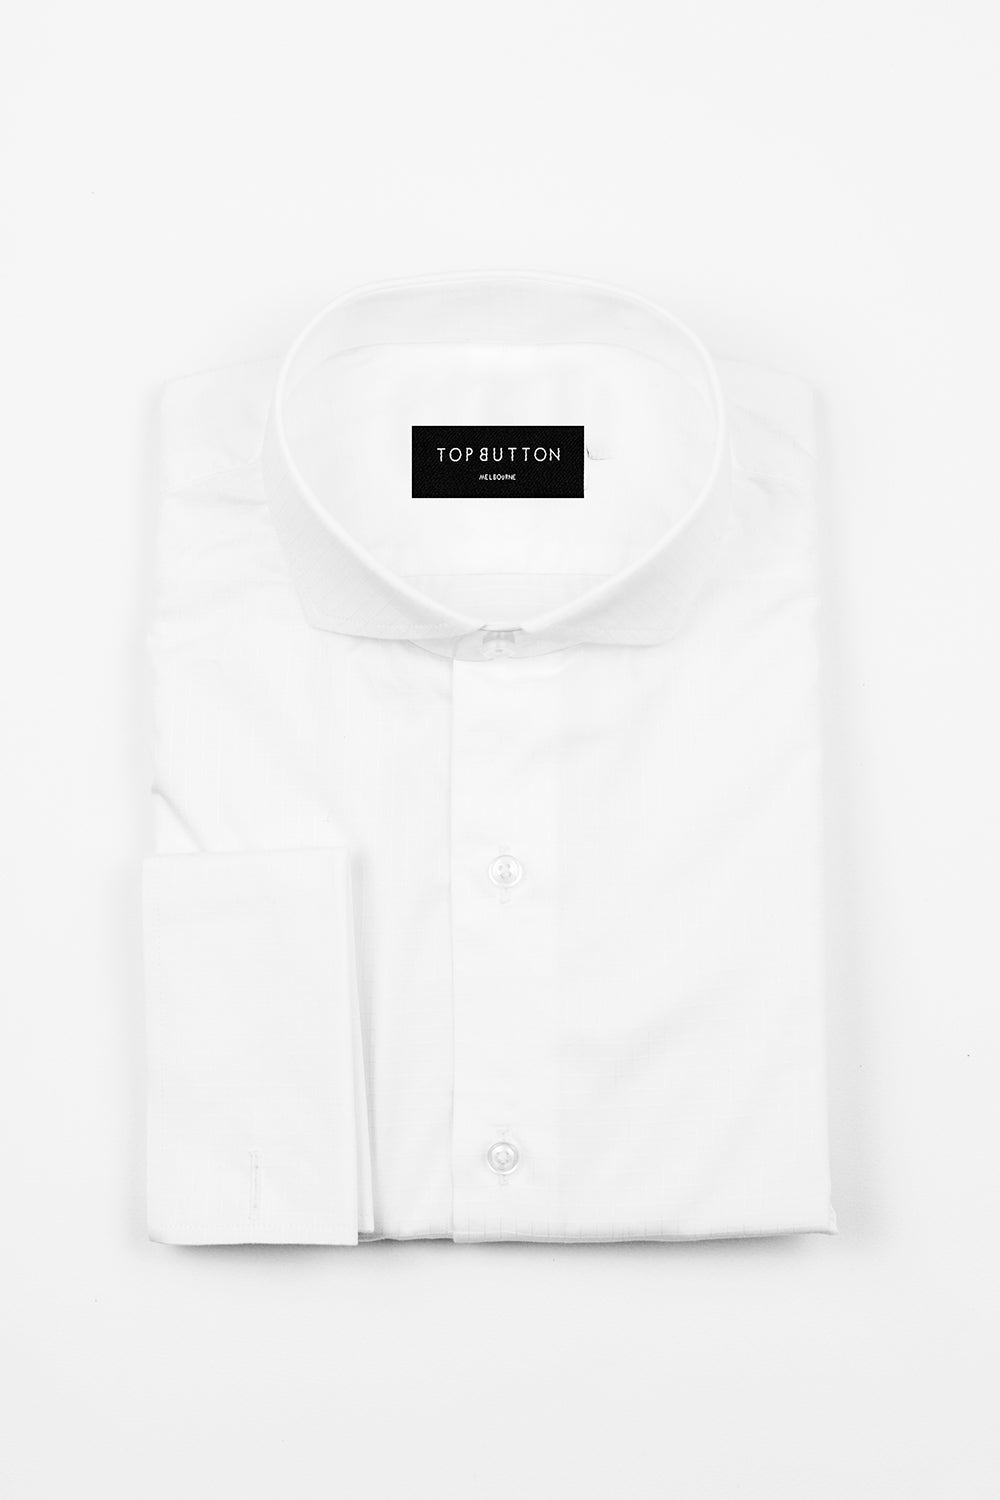 Checkmate – White - Top Button Custom Shirts Melbourne